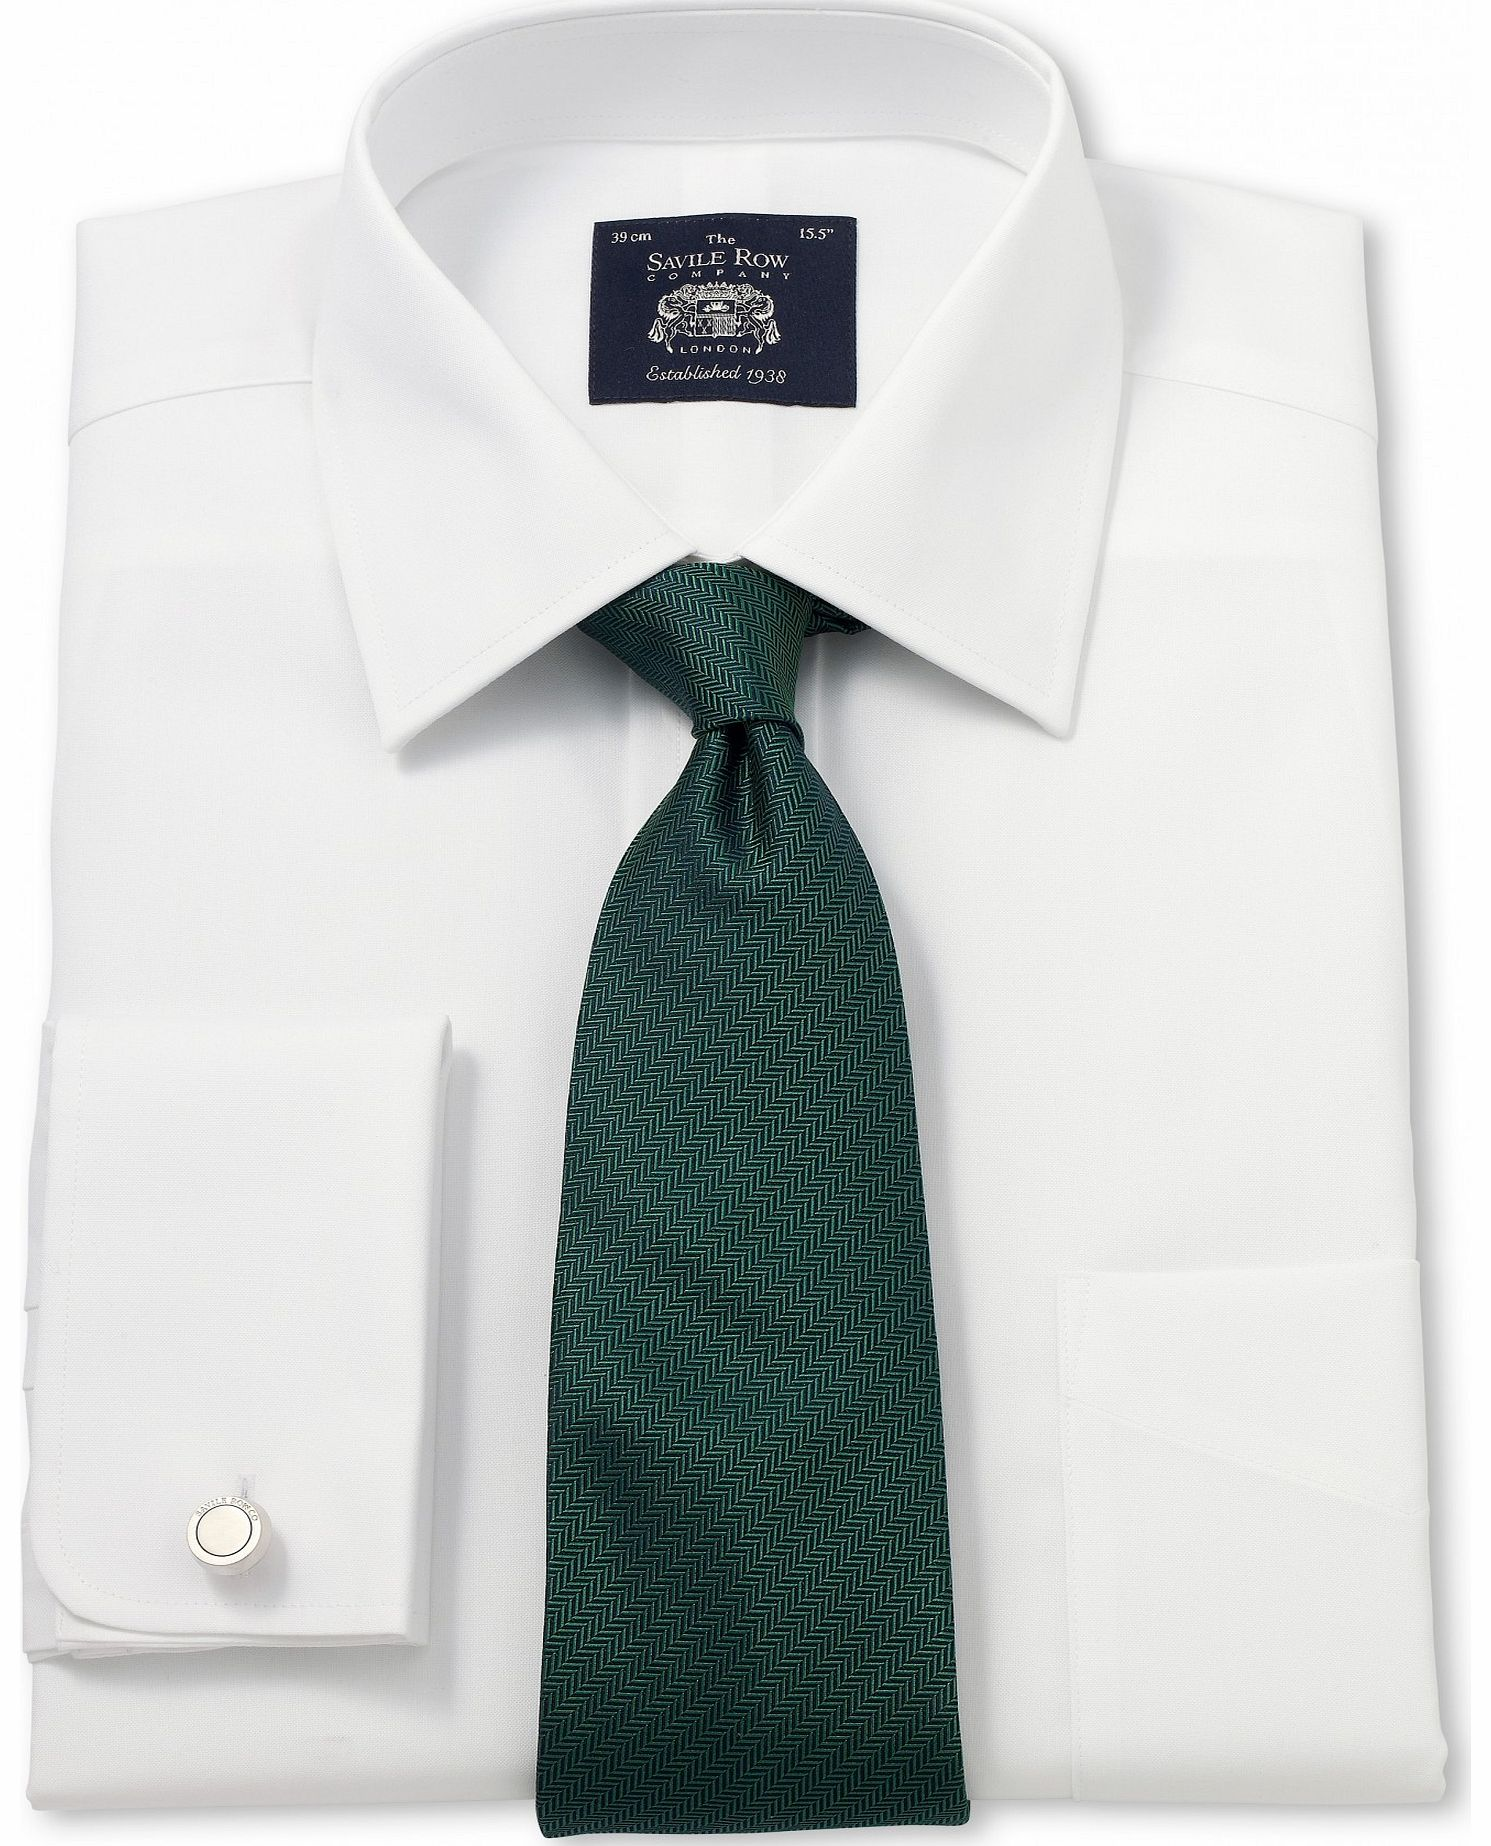 Savile Row Company White Non-Iron Classic Fit Shirt 18 1/2`` product image